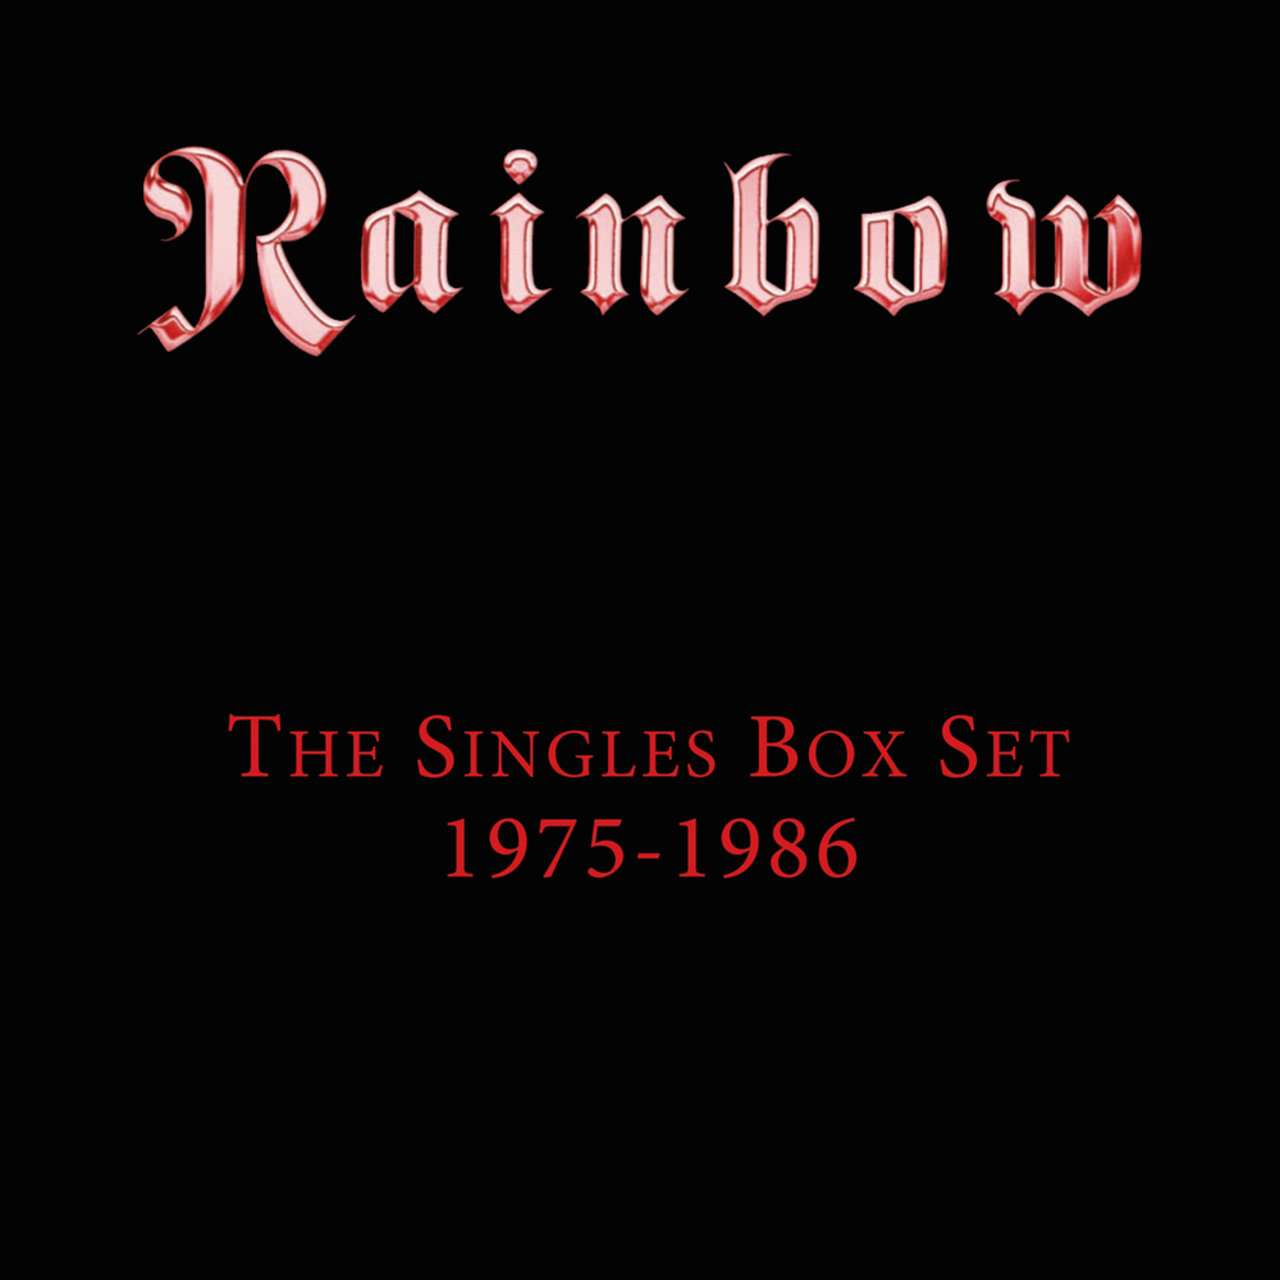 The Singles Box Set 1975-1986